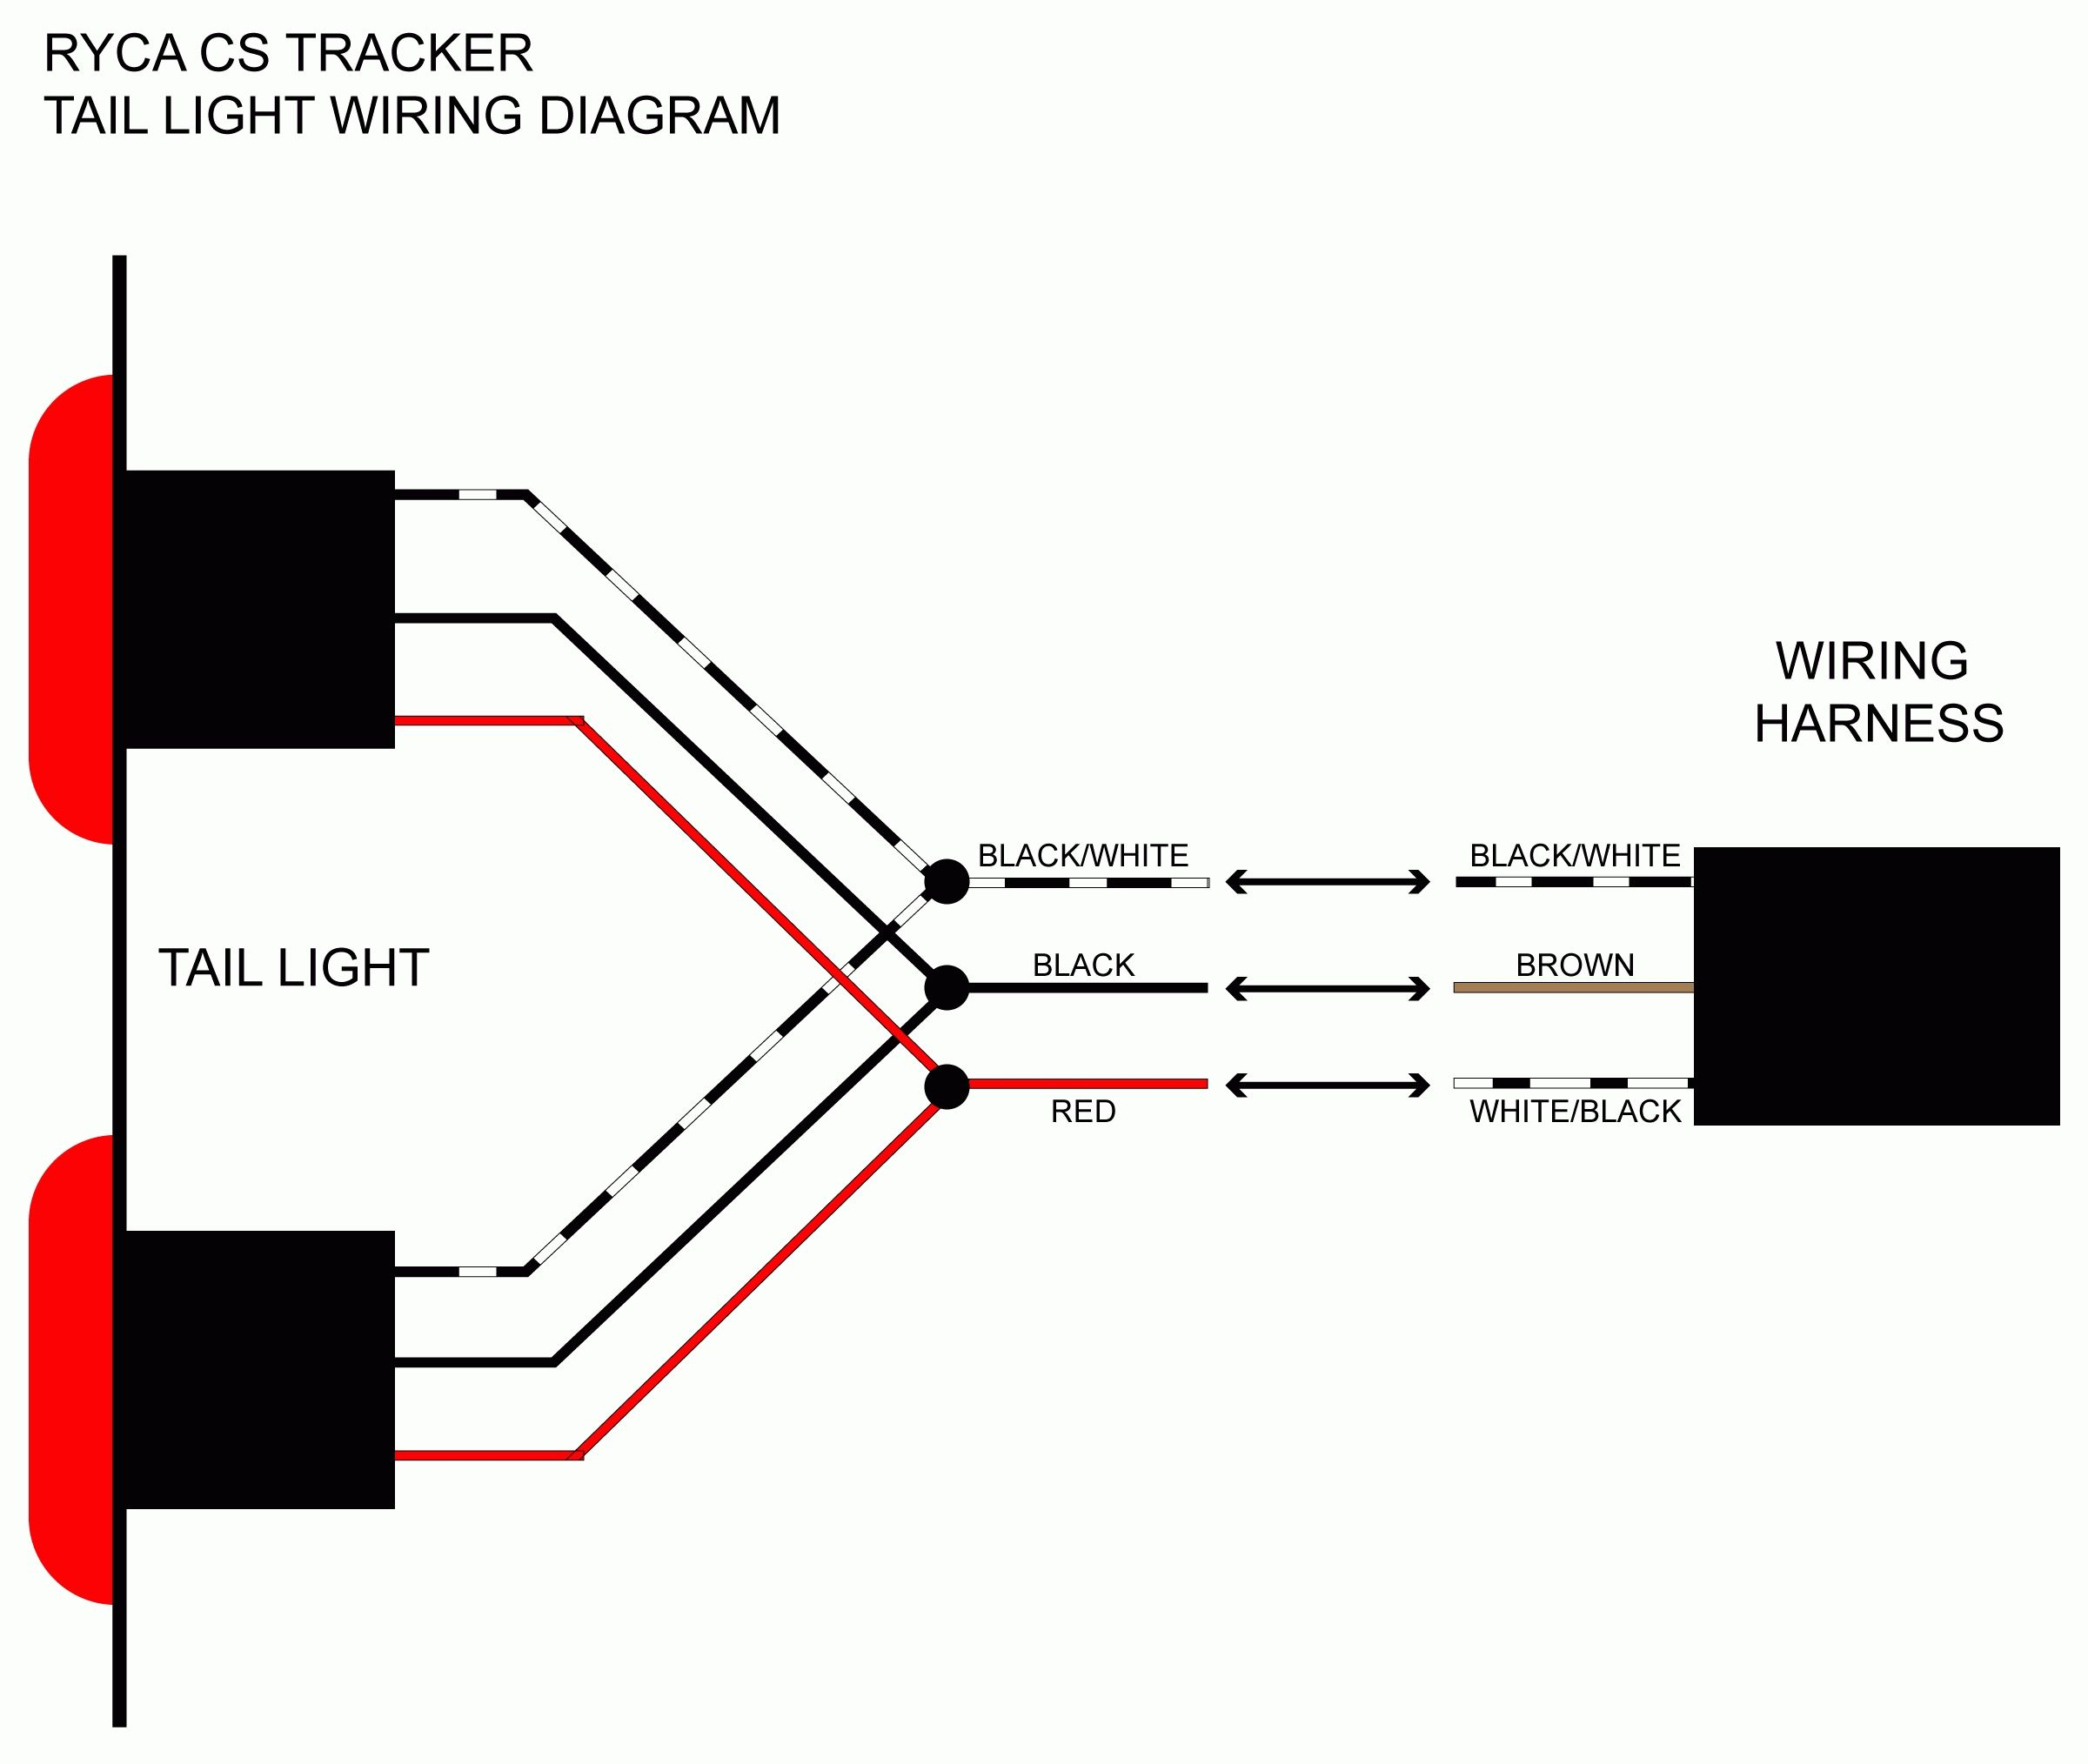 small resolution of 3 wire led light wiring diagram wiring diagram world 3 wire led strobe light wiring diagram led light wire diagram 3